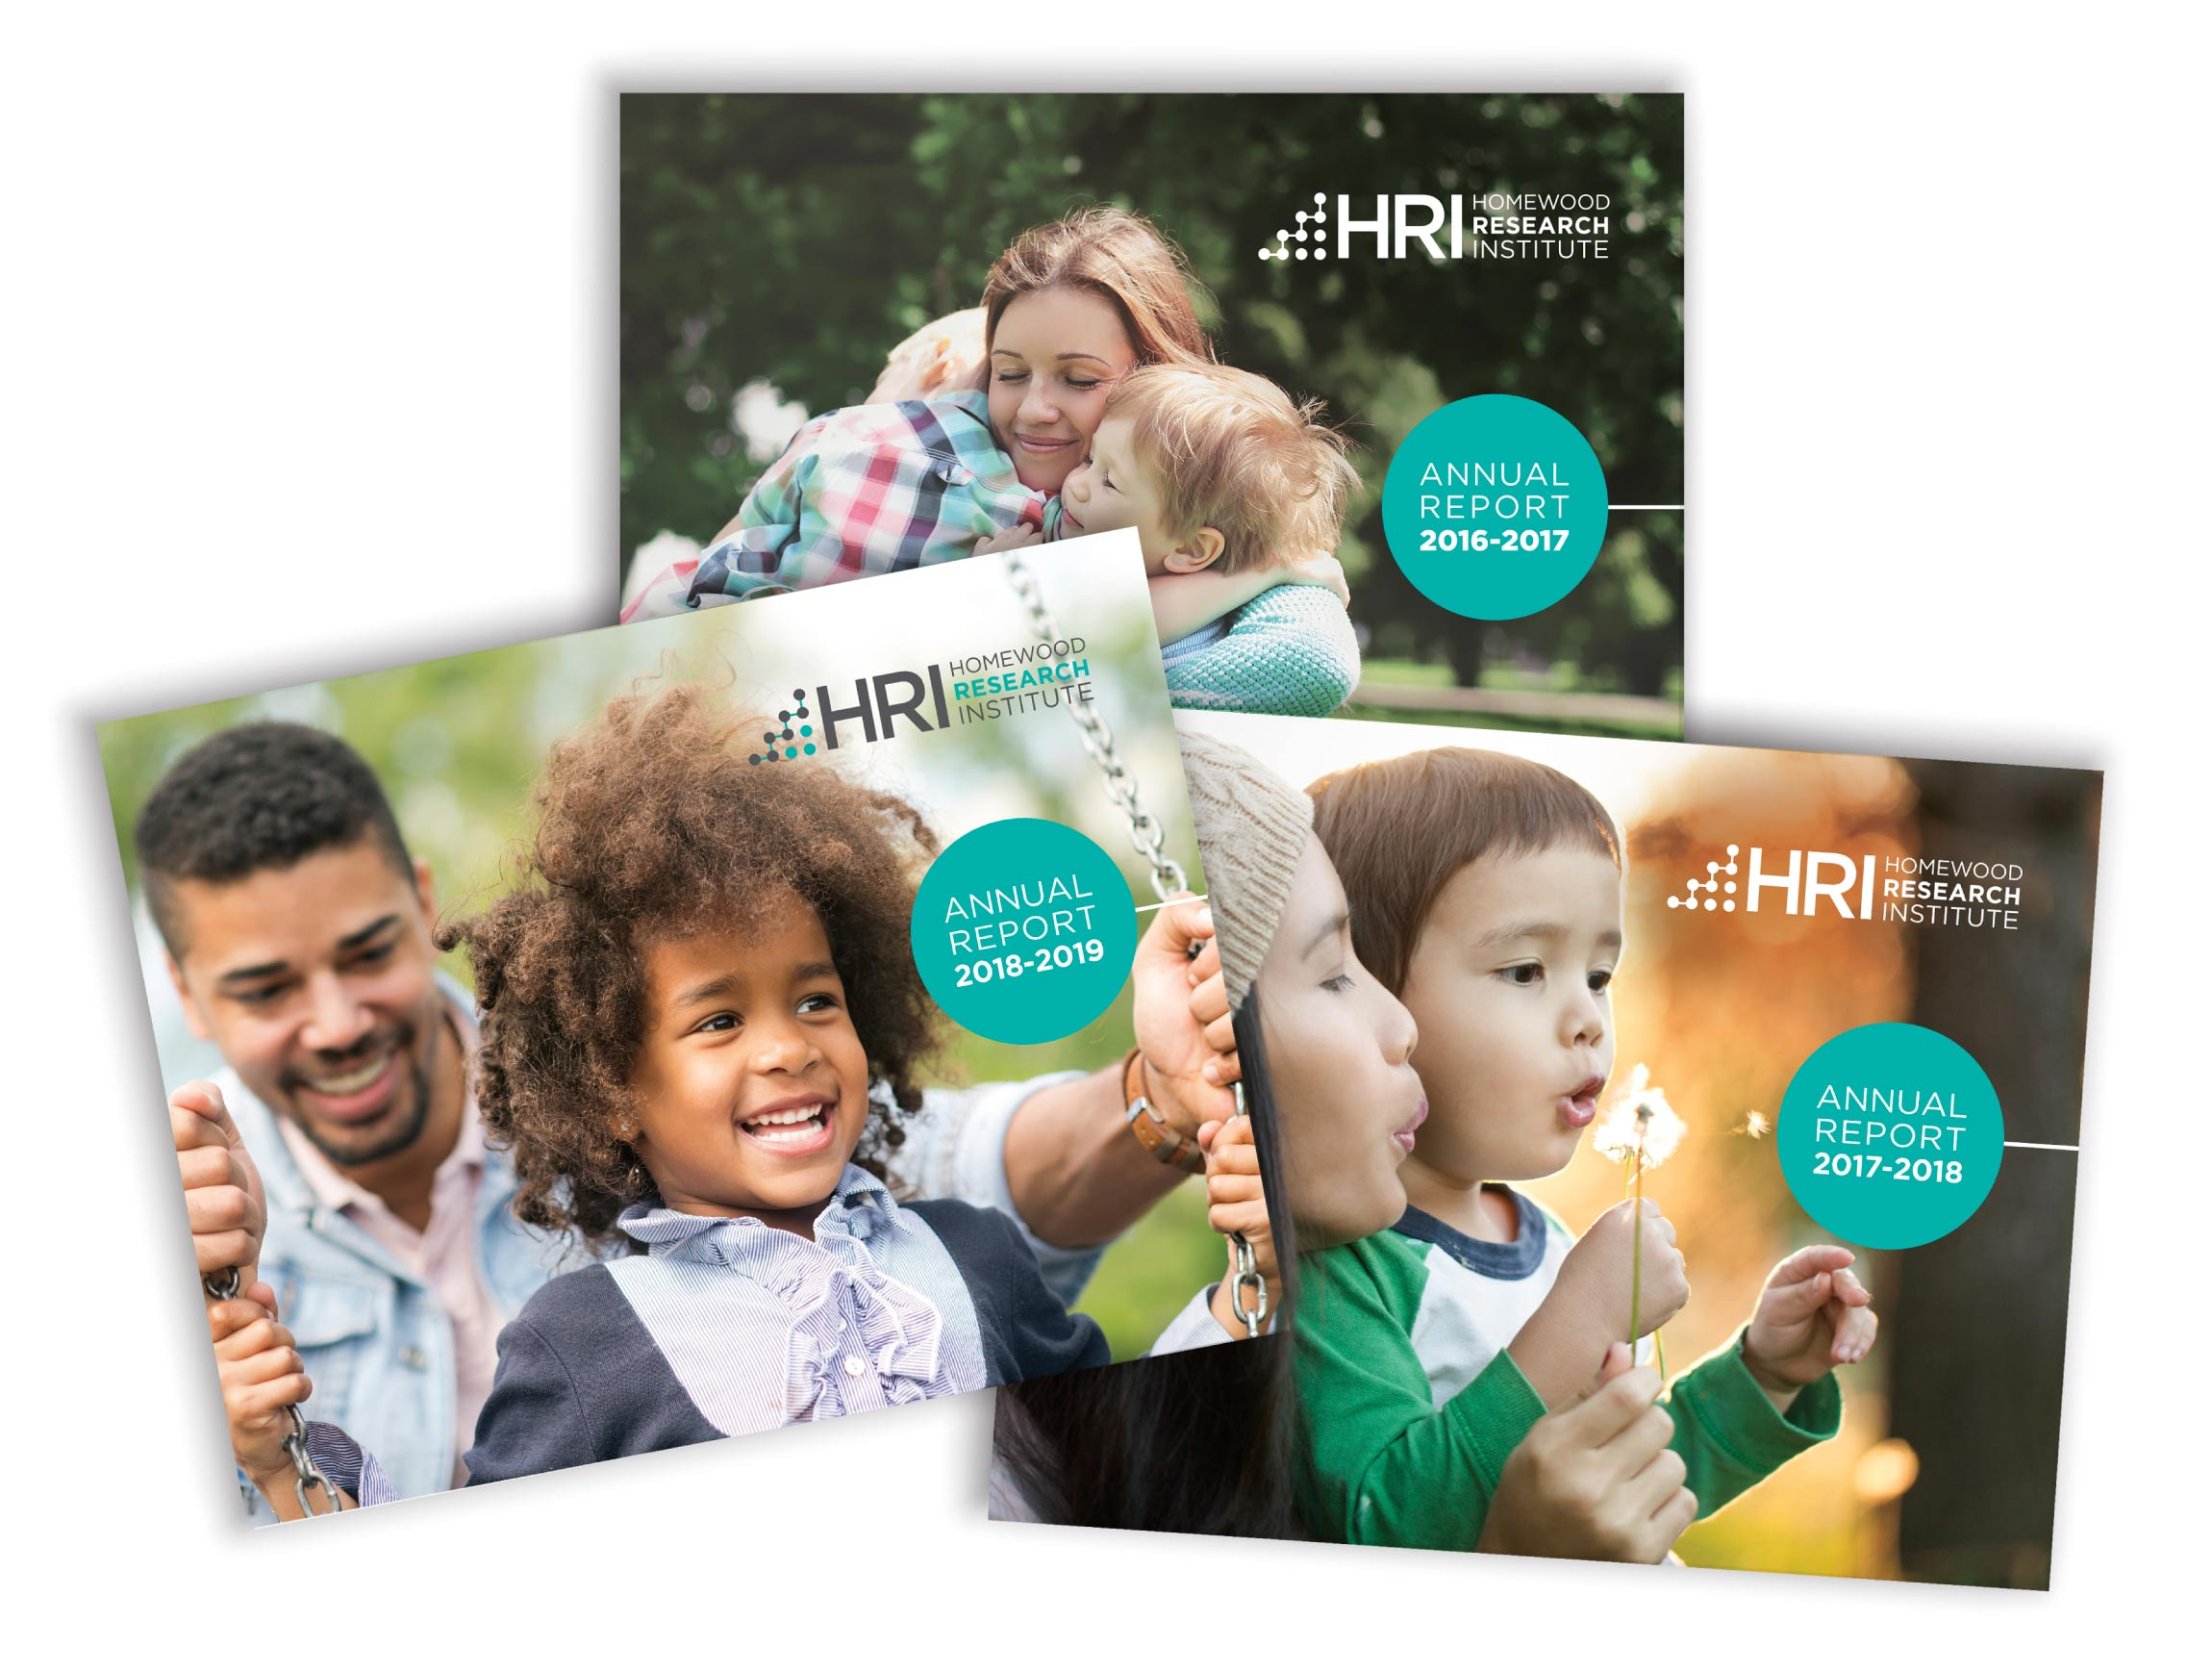 HRI Annual Report Design for 2016 to 2019